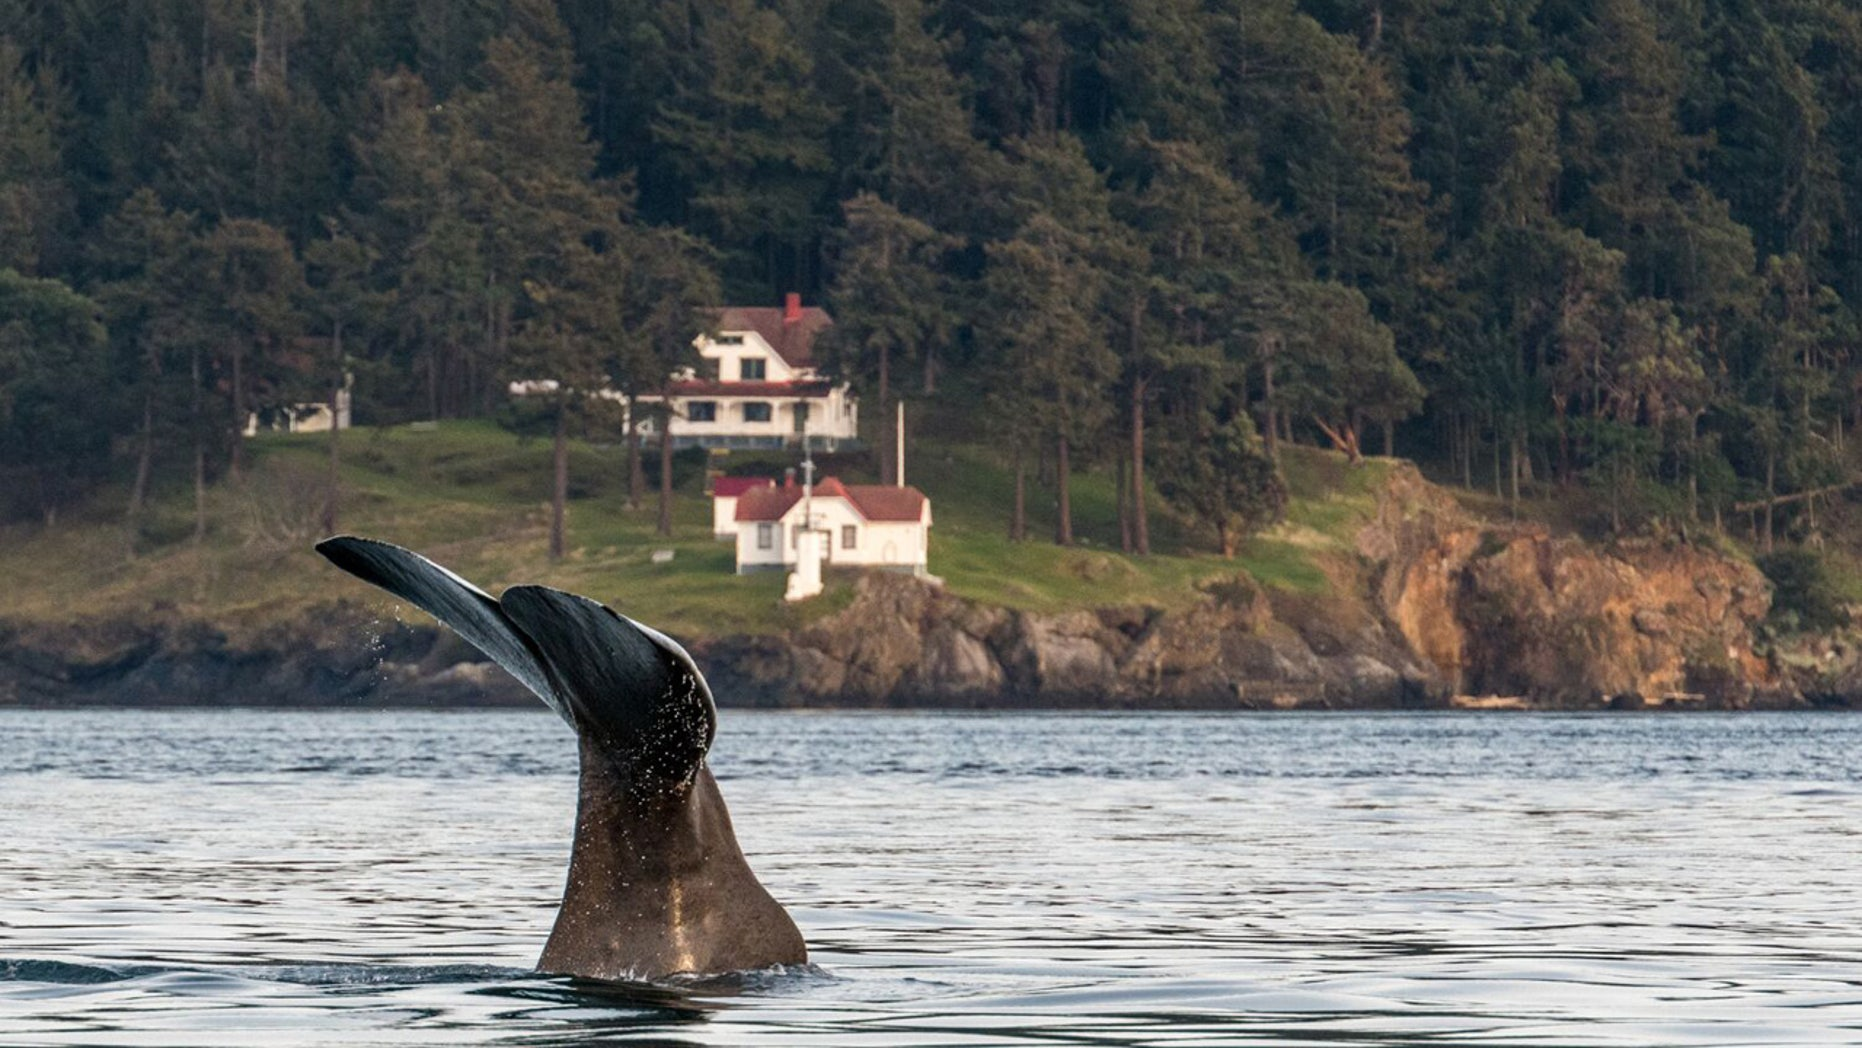 A sperm whale was spotted Saturday for the first time in the inland waters near the San Juan Islands in Washington state.